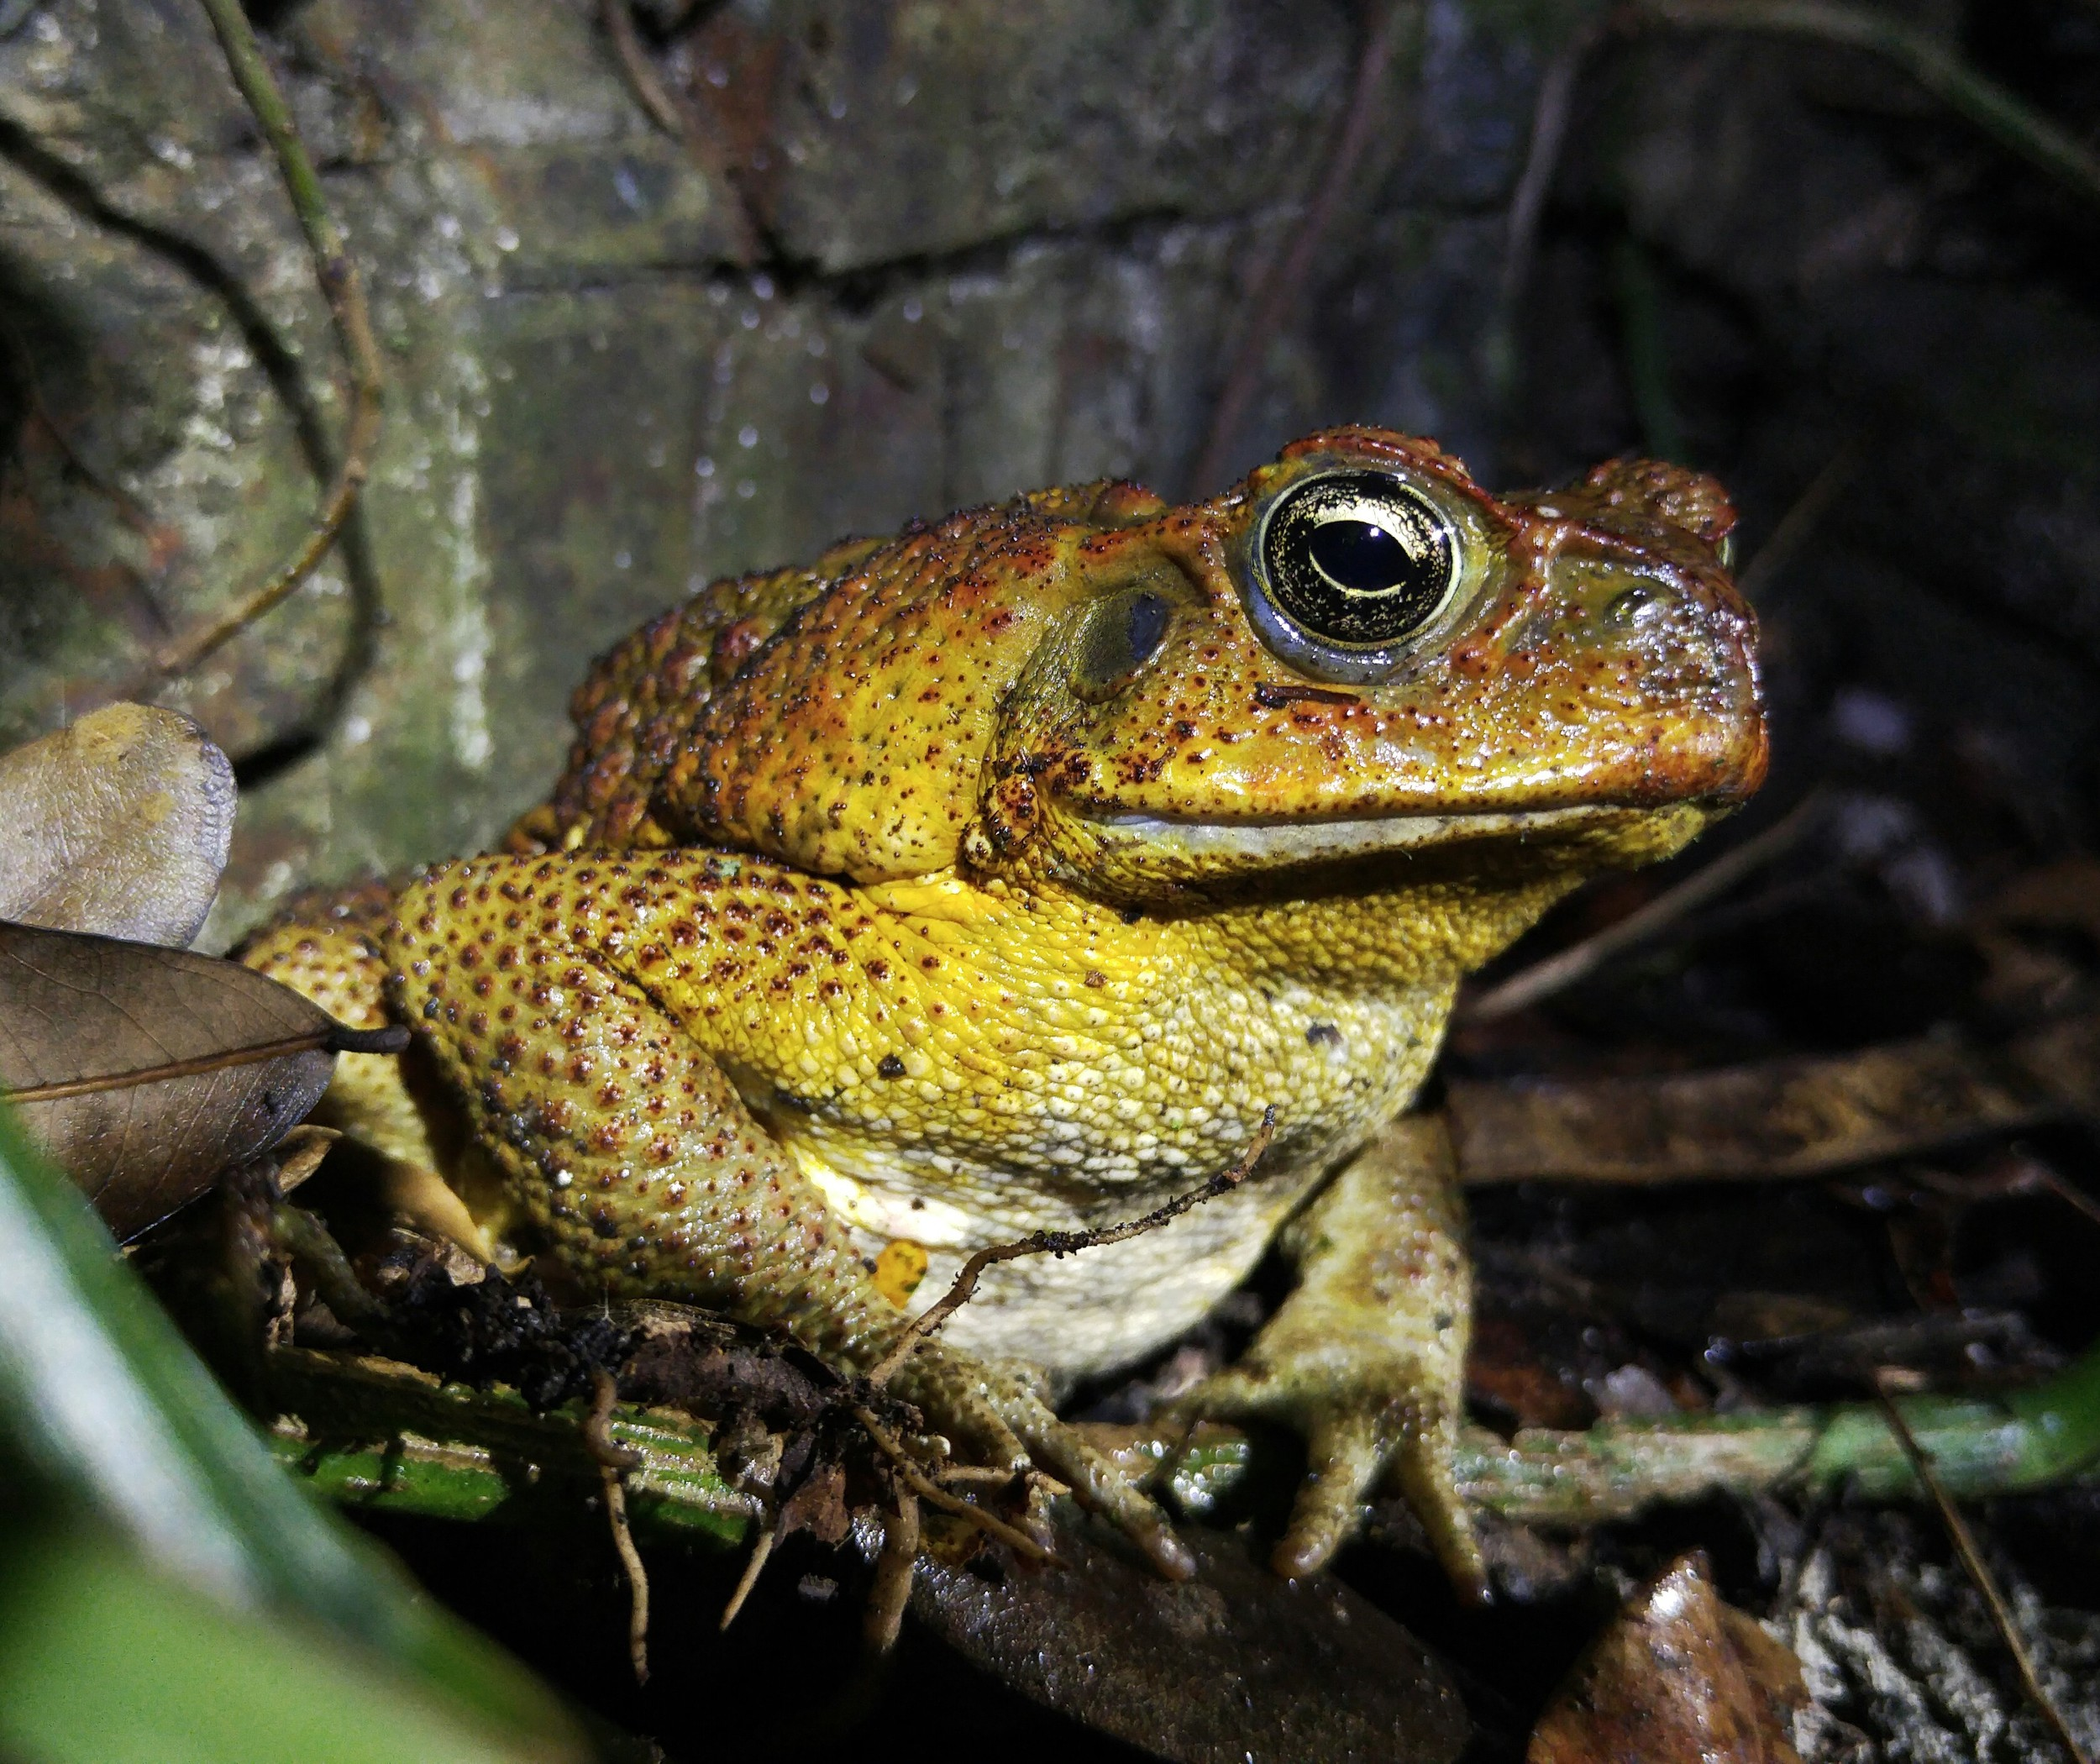 Marine Toad,   Rhinella marina . this large toxic toad was hanging out near the side of the dark road.